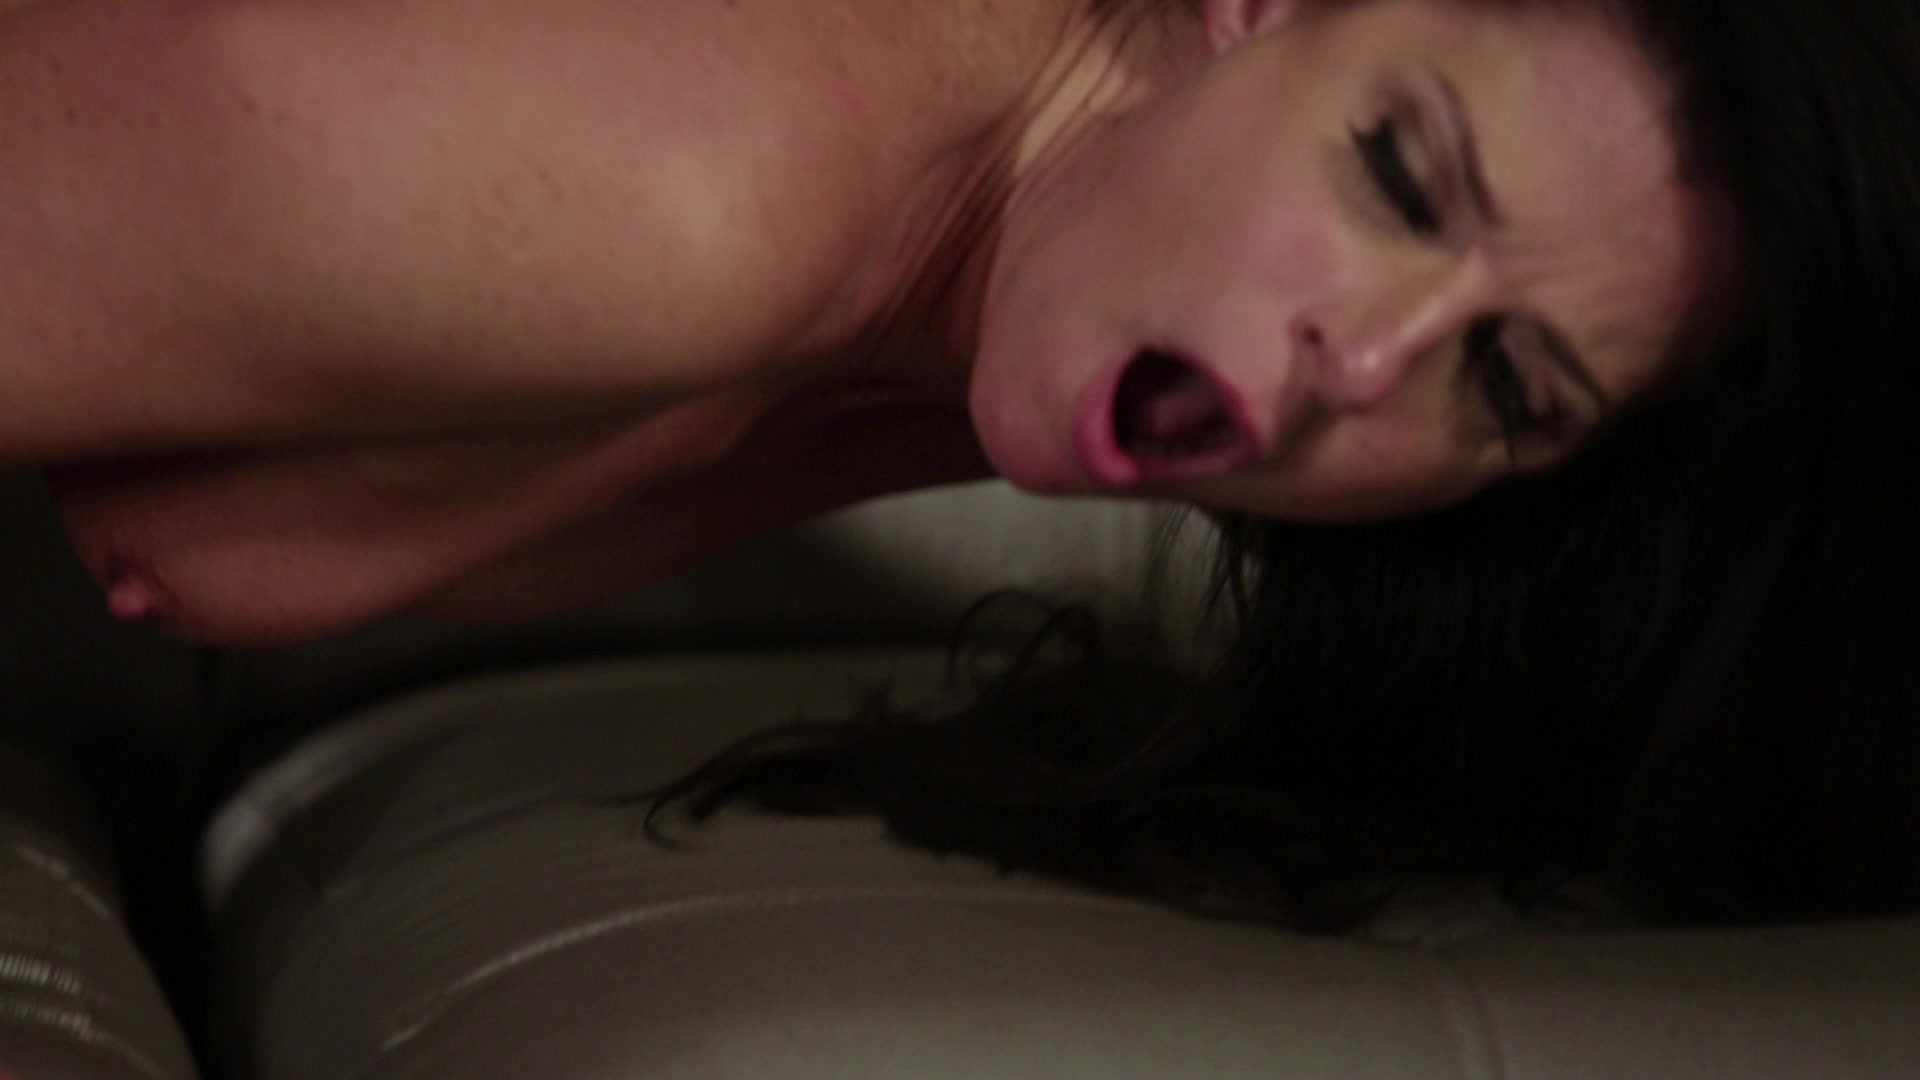 Scene with India Summer - image 20 out of 20